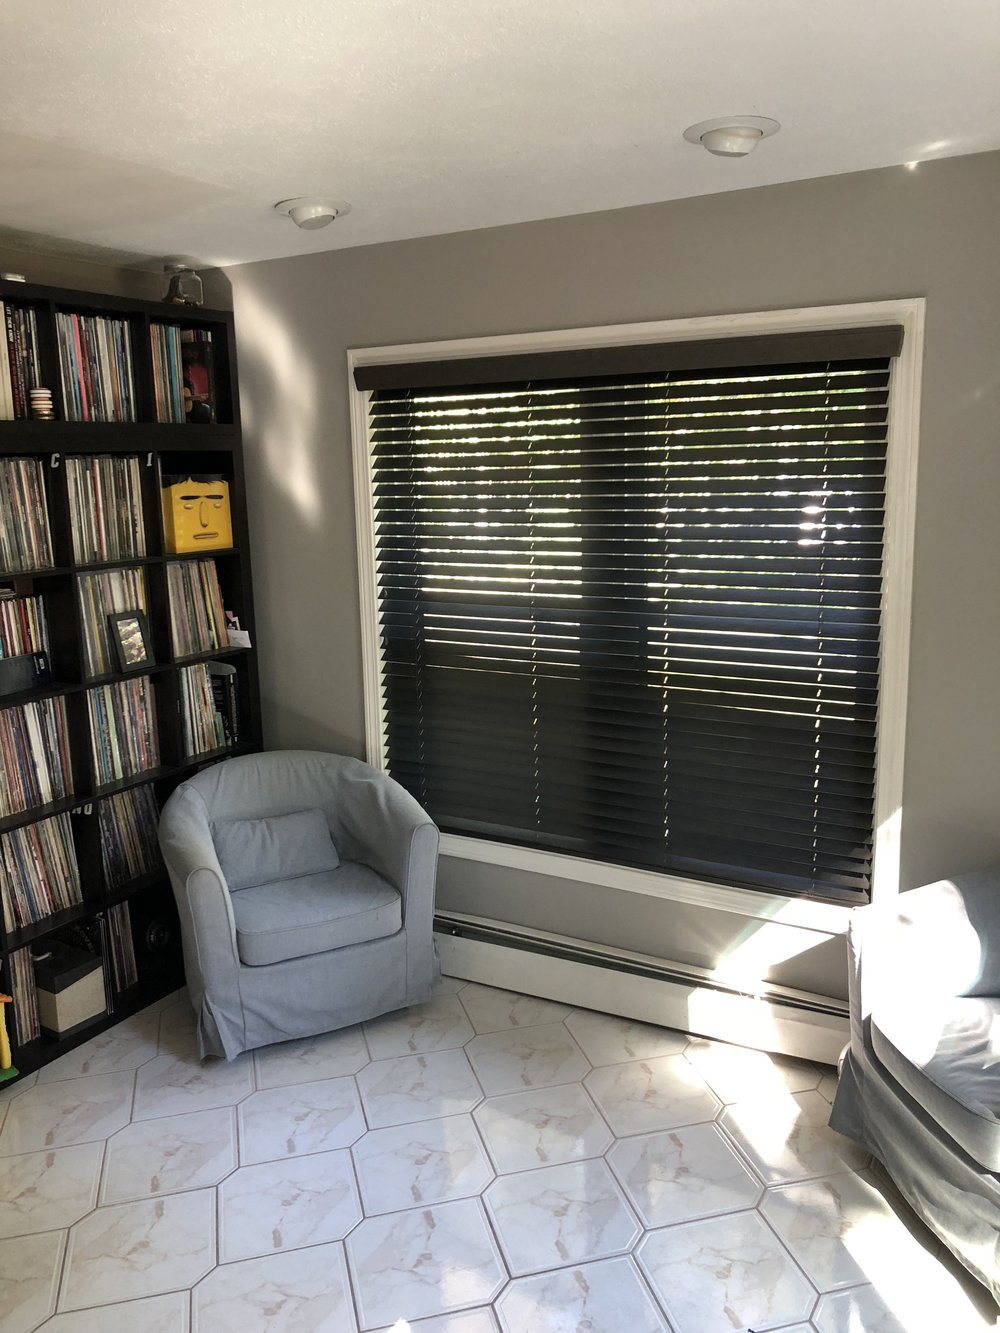 THESE WIRE-BRUSHED 2 INCH WOOD BLINDS ARE A BOLD STATEMENT IN THIS CONTEMPORARY SPACE IN CLINTON, CT. THE 'JAVA' COLOR ADDS THE PERFECT CONTRAST TO COMPLEMENT THE REST OF THE PIECES IN THROUGHOUT THE ENTIRE HOME!